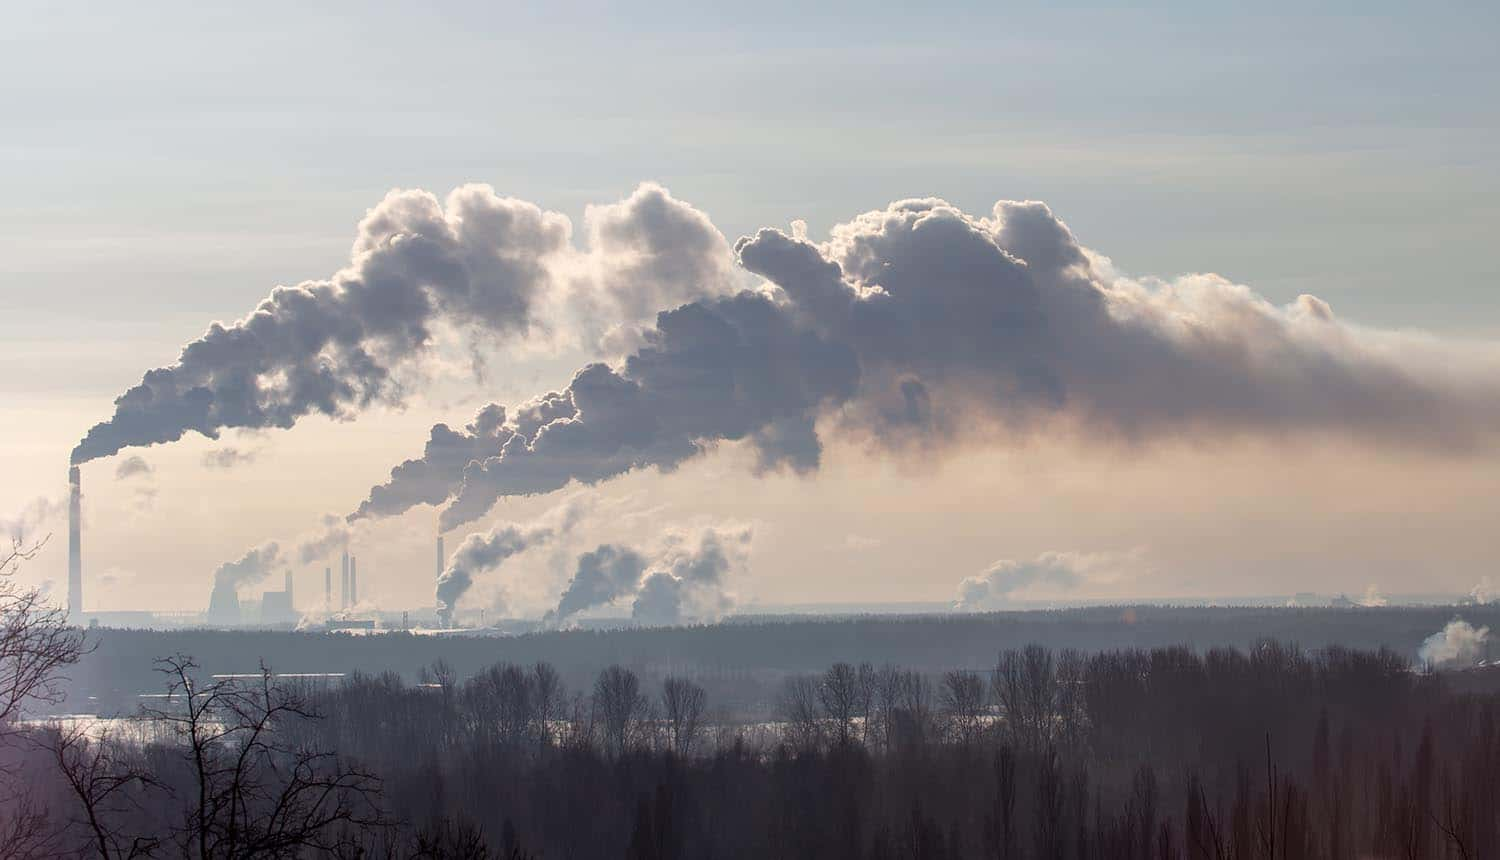 Smoke from the chimneys of a plant showing need for industrial cybersecurity